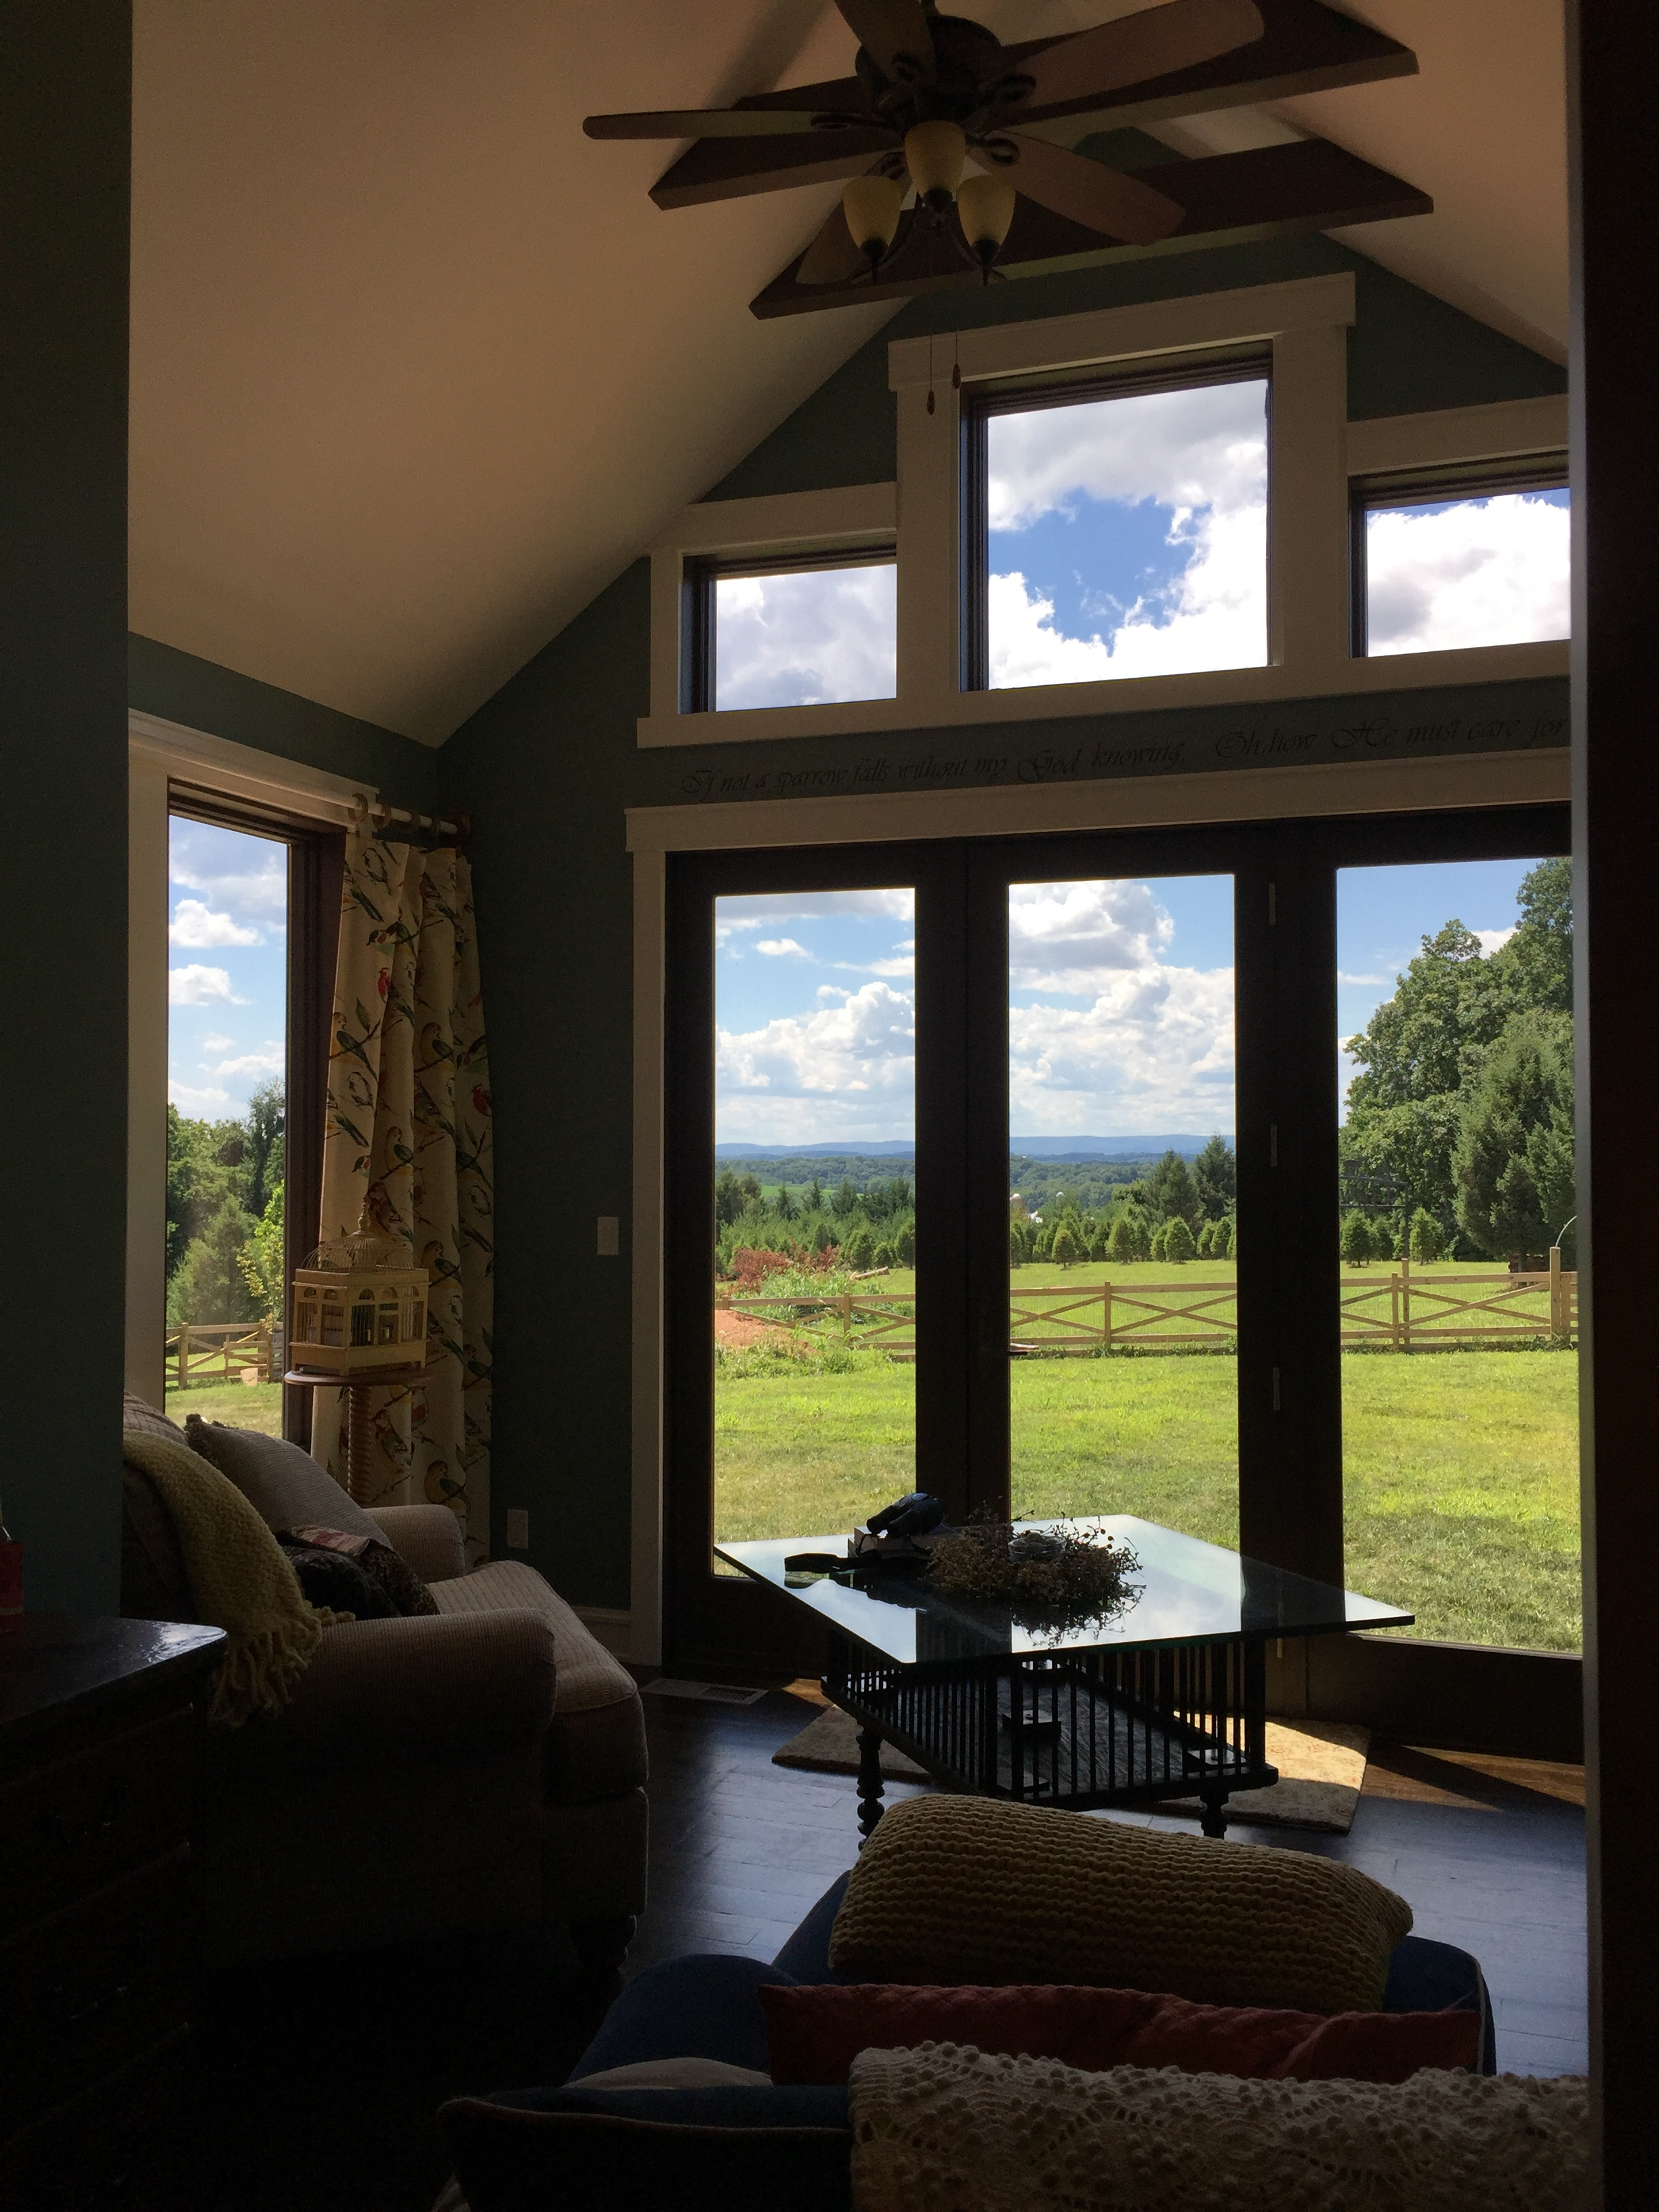 The view from the master bedroom's sitting room.